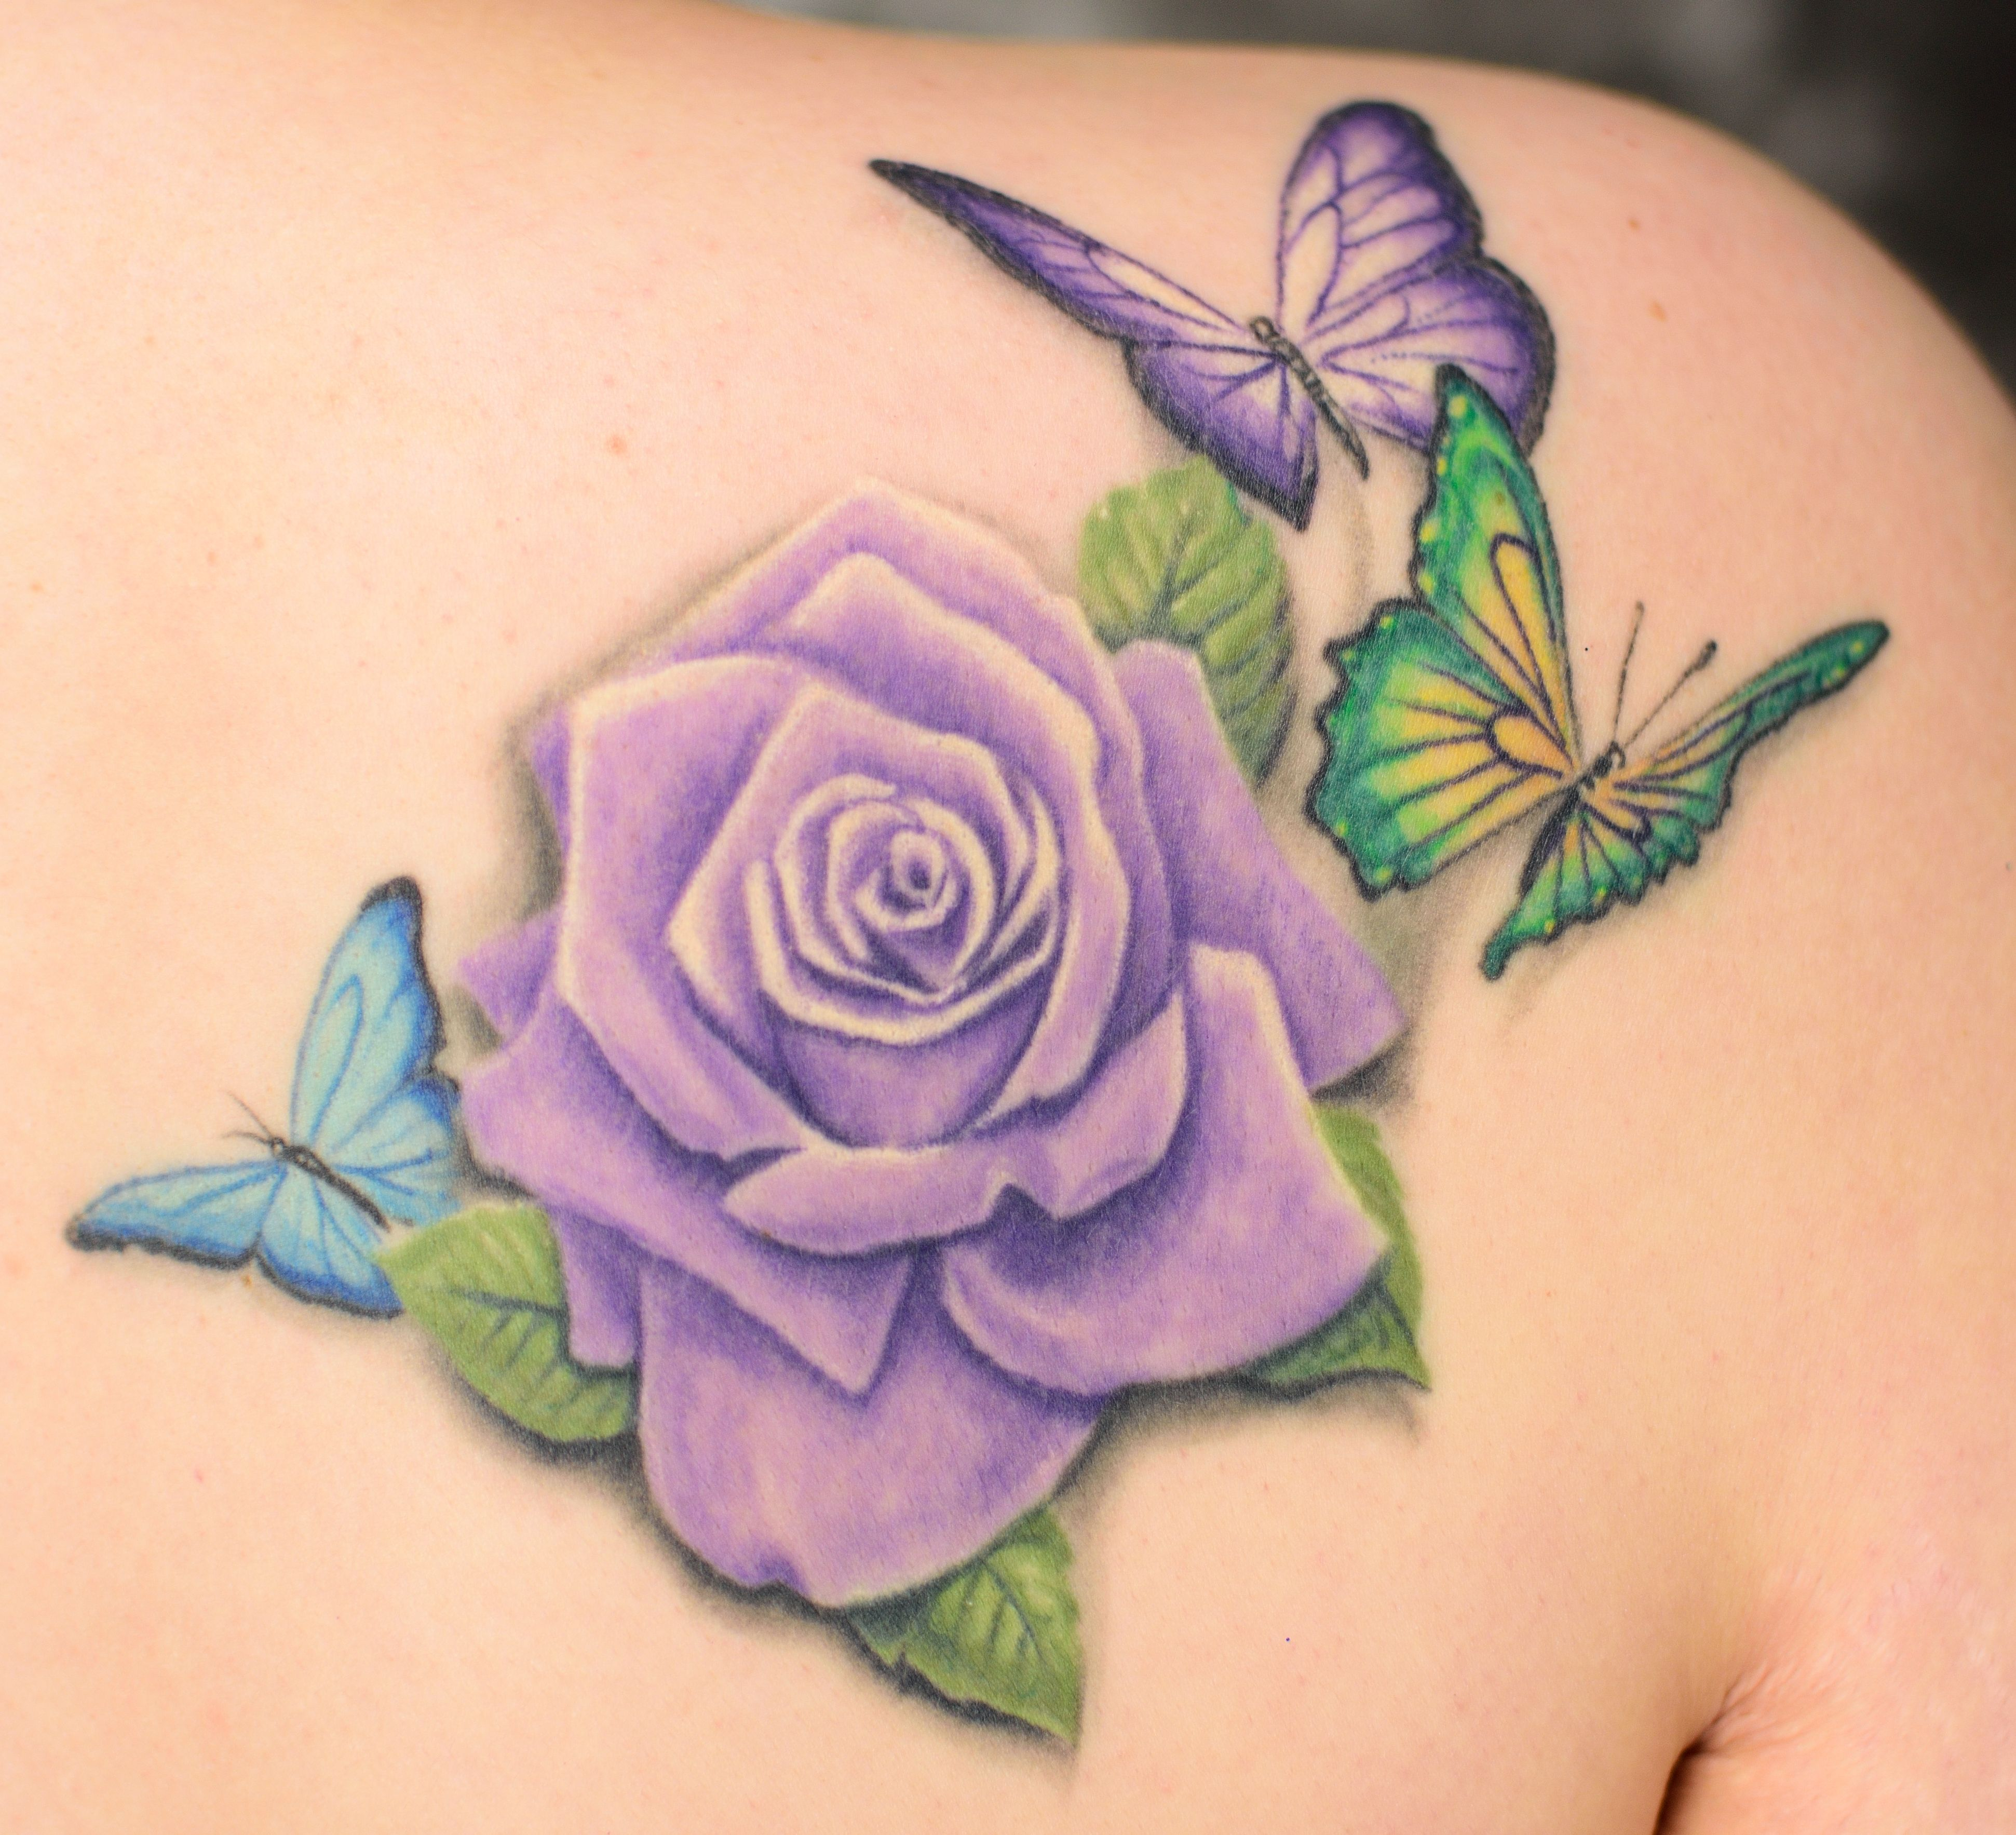 c2c5d214e Purple rose tattoo with butterflies. For my daughter, her birth flower is a  rose. Her signature color is purple. Butterflies like her bedroom, ...